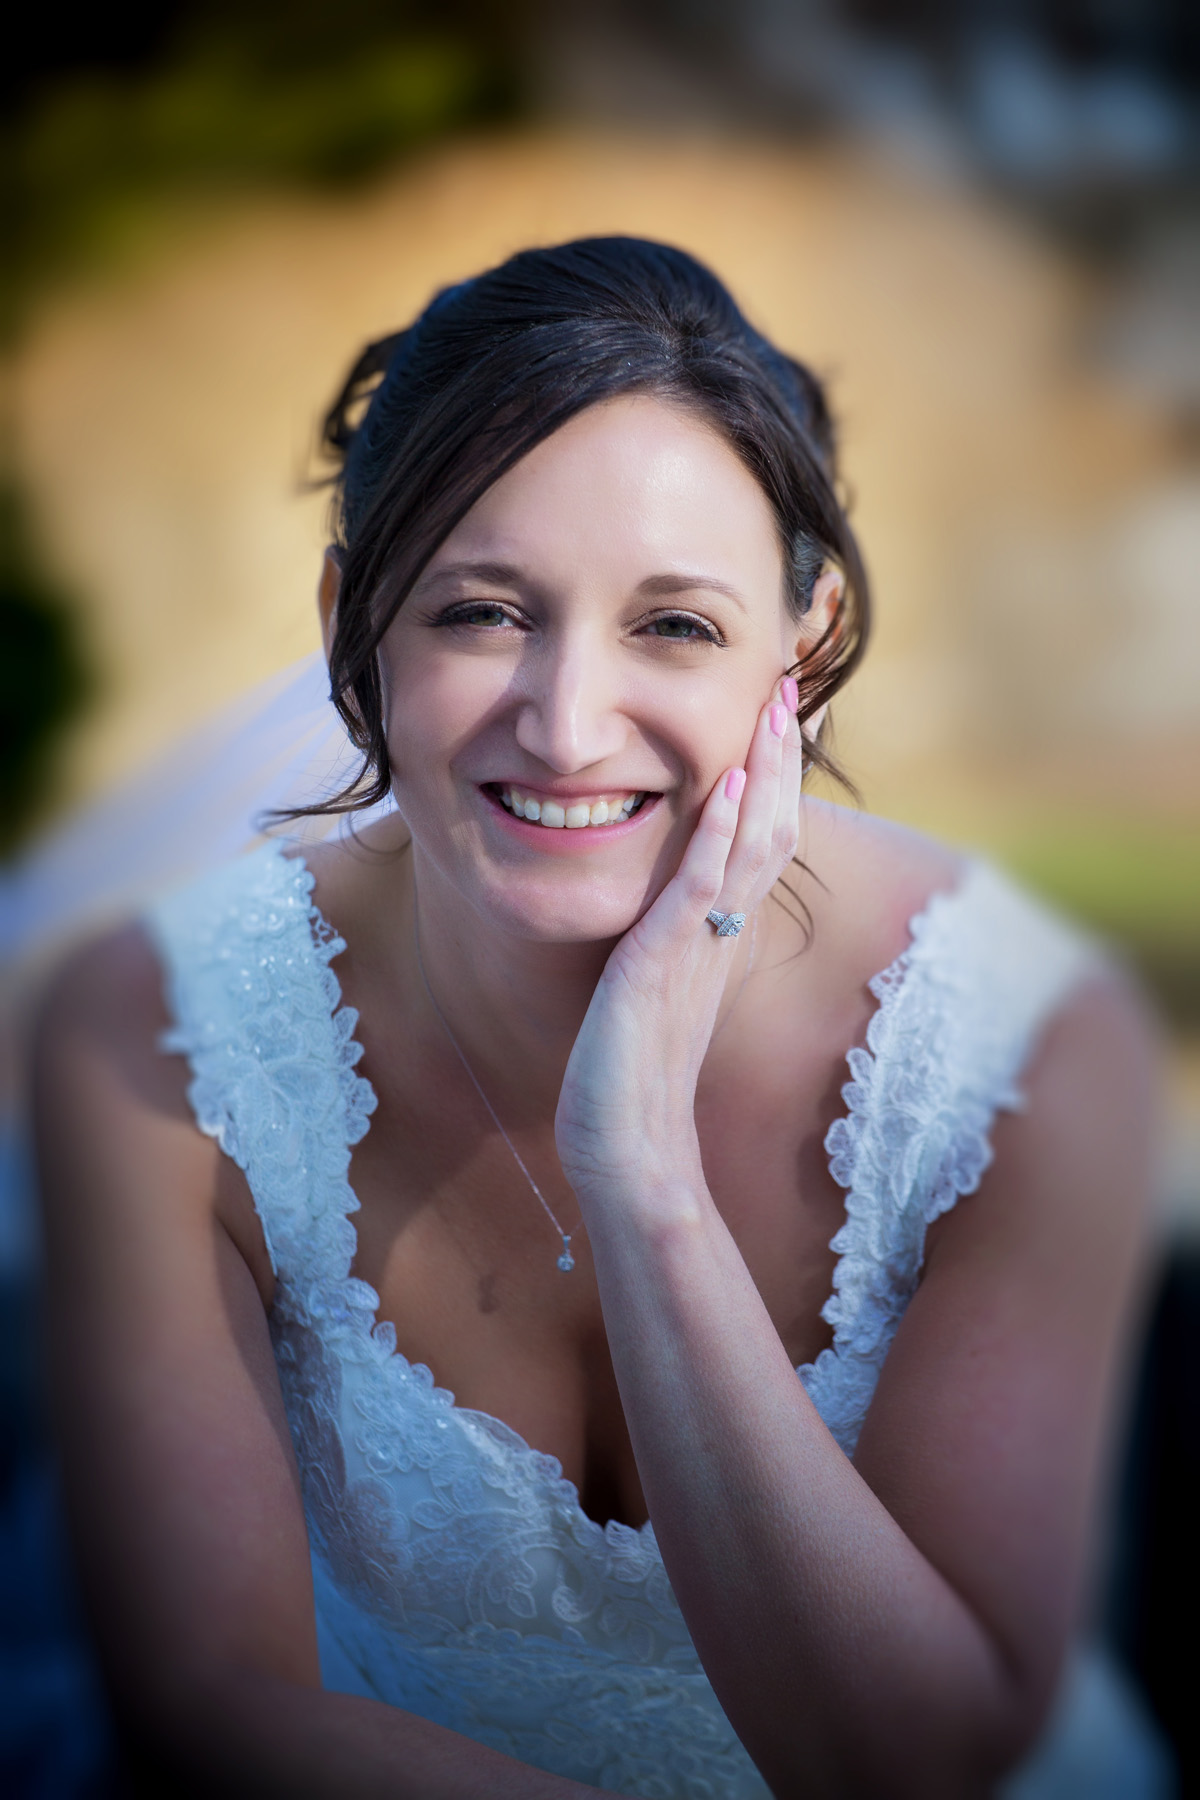 Wedding portrait of bride at Samoset Resort, Rockland, Maine.  Wedding photographers Will and Lucia of Focus Photography